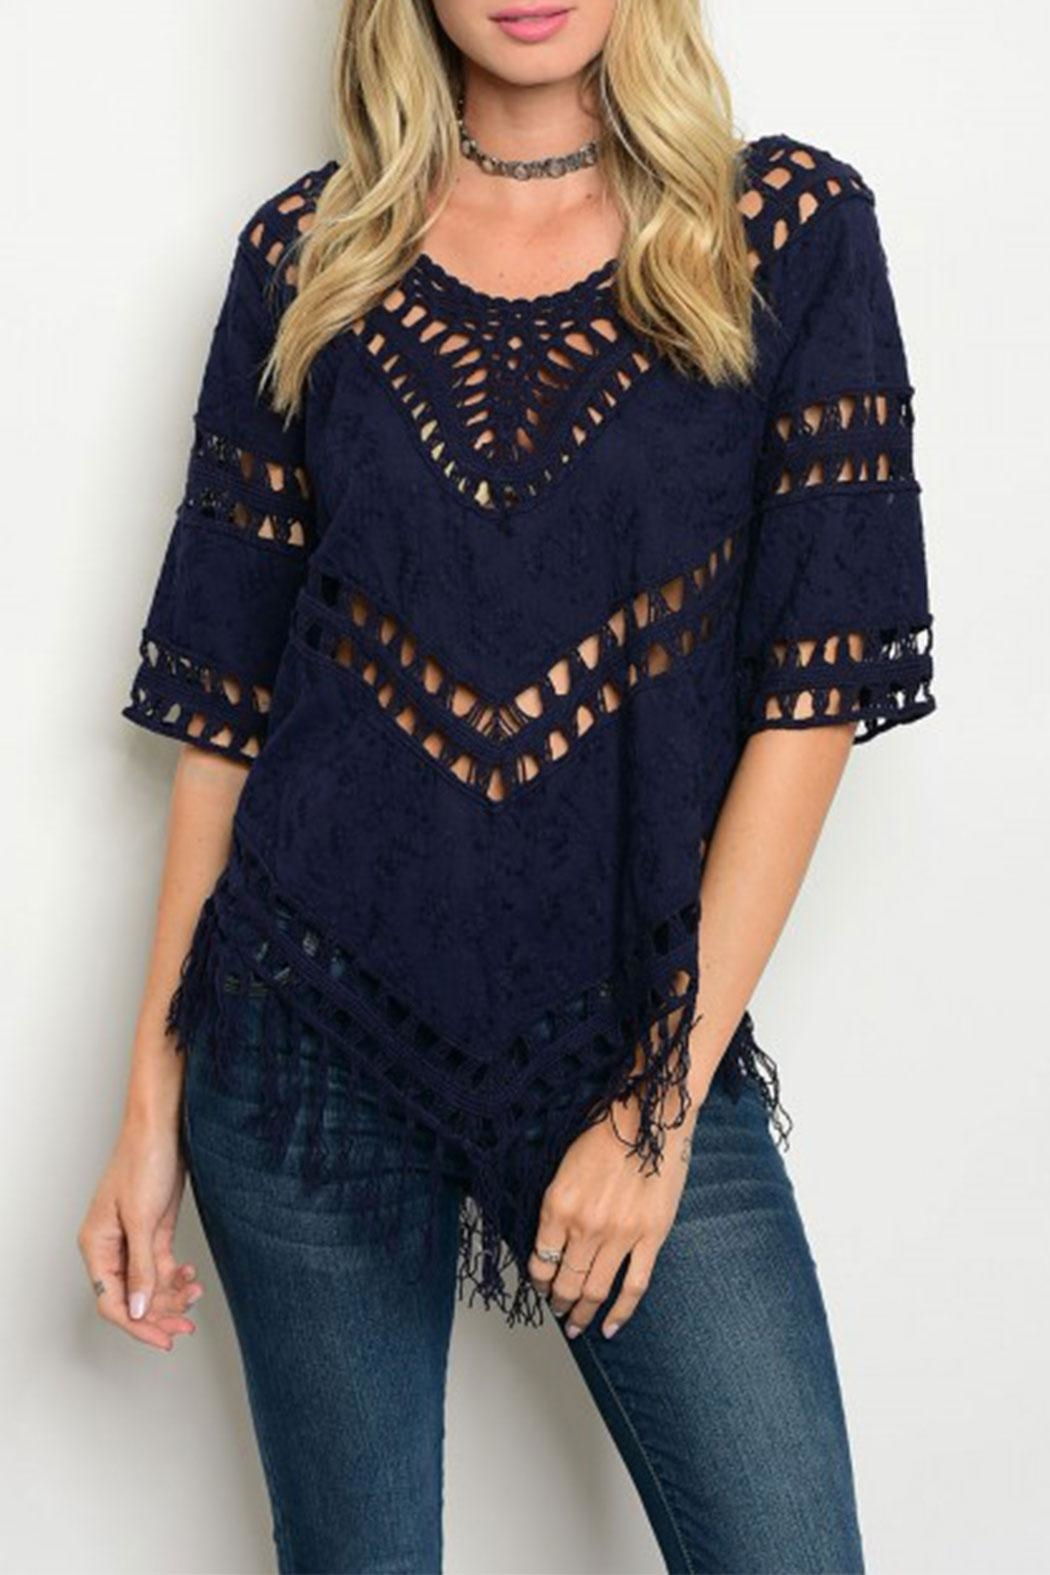 The Clothing Co Navy Crochet Top - Main Image